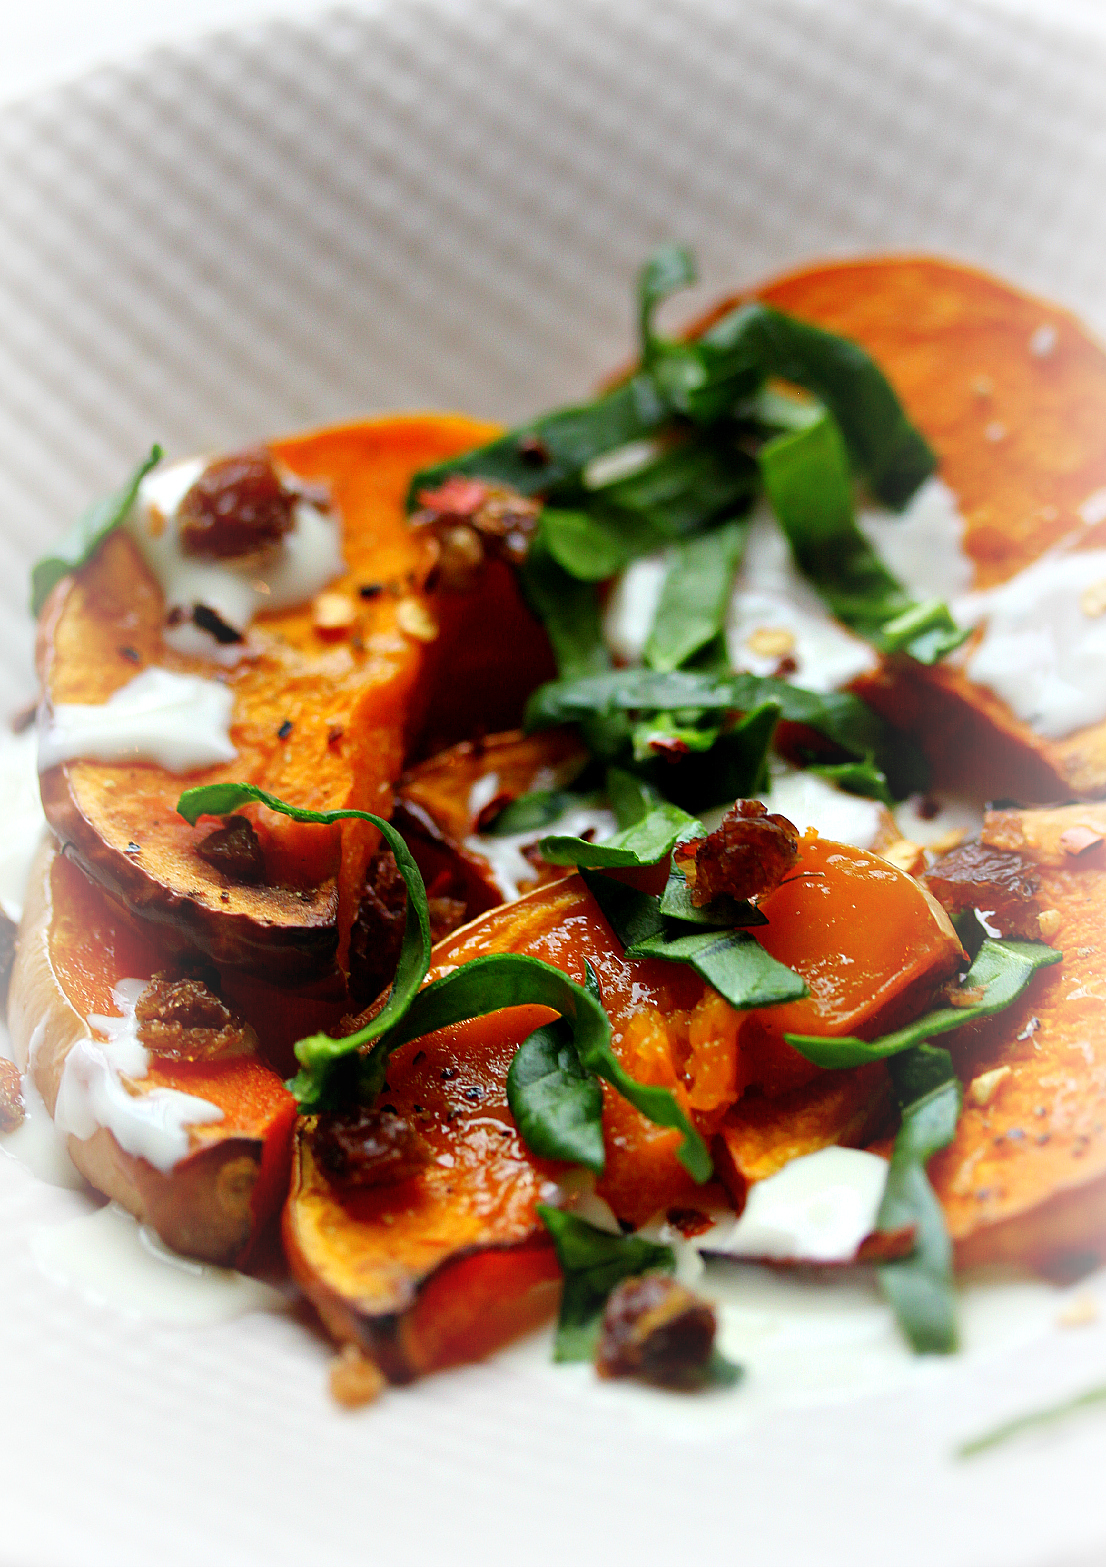 ©Simple Butternut Squash Wedges by Dena T Bray